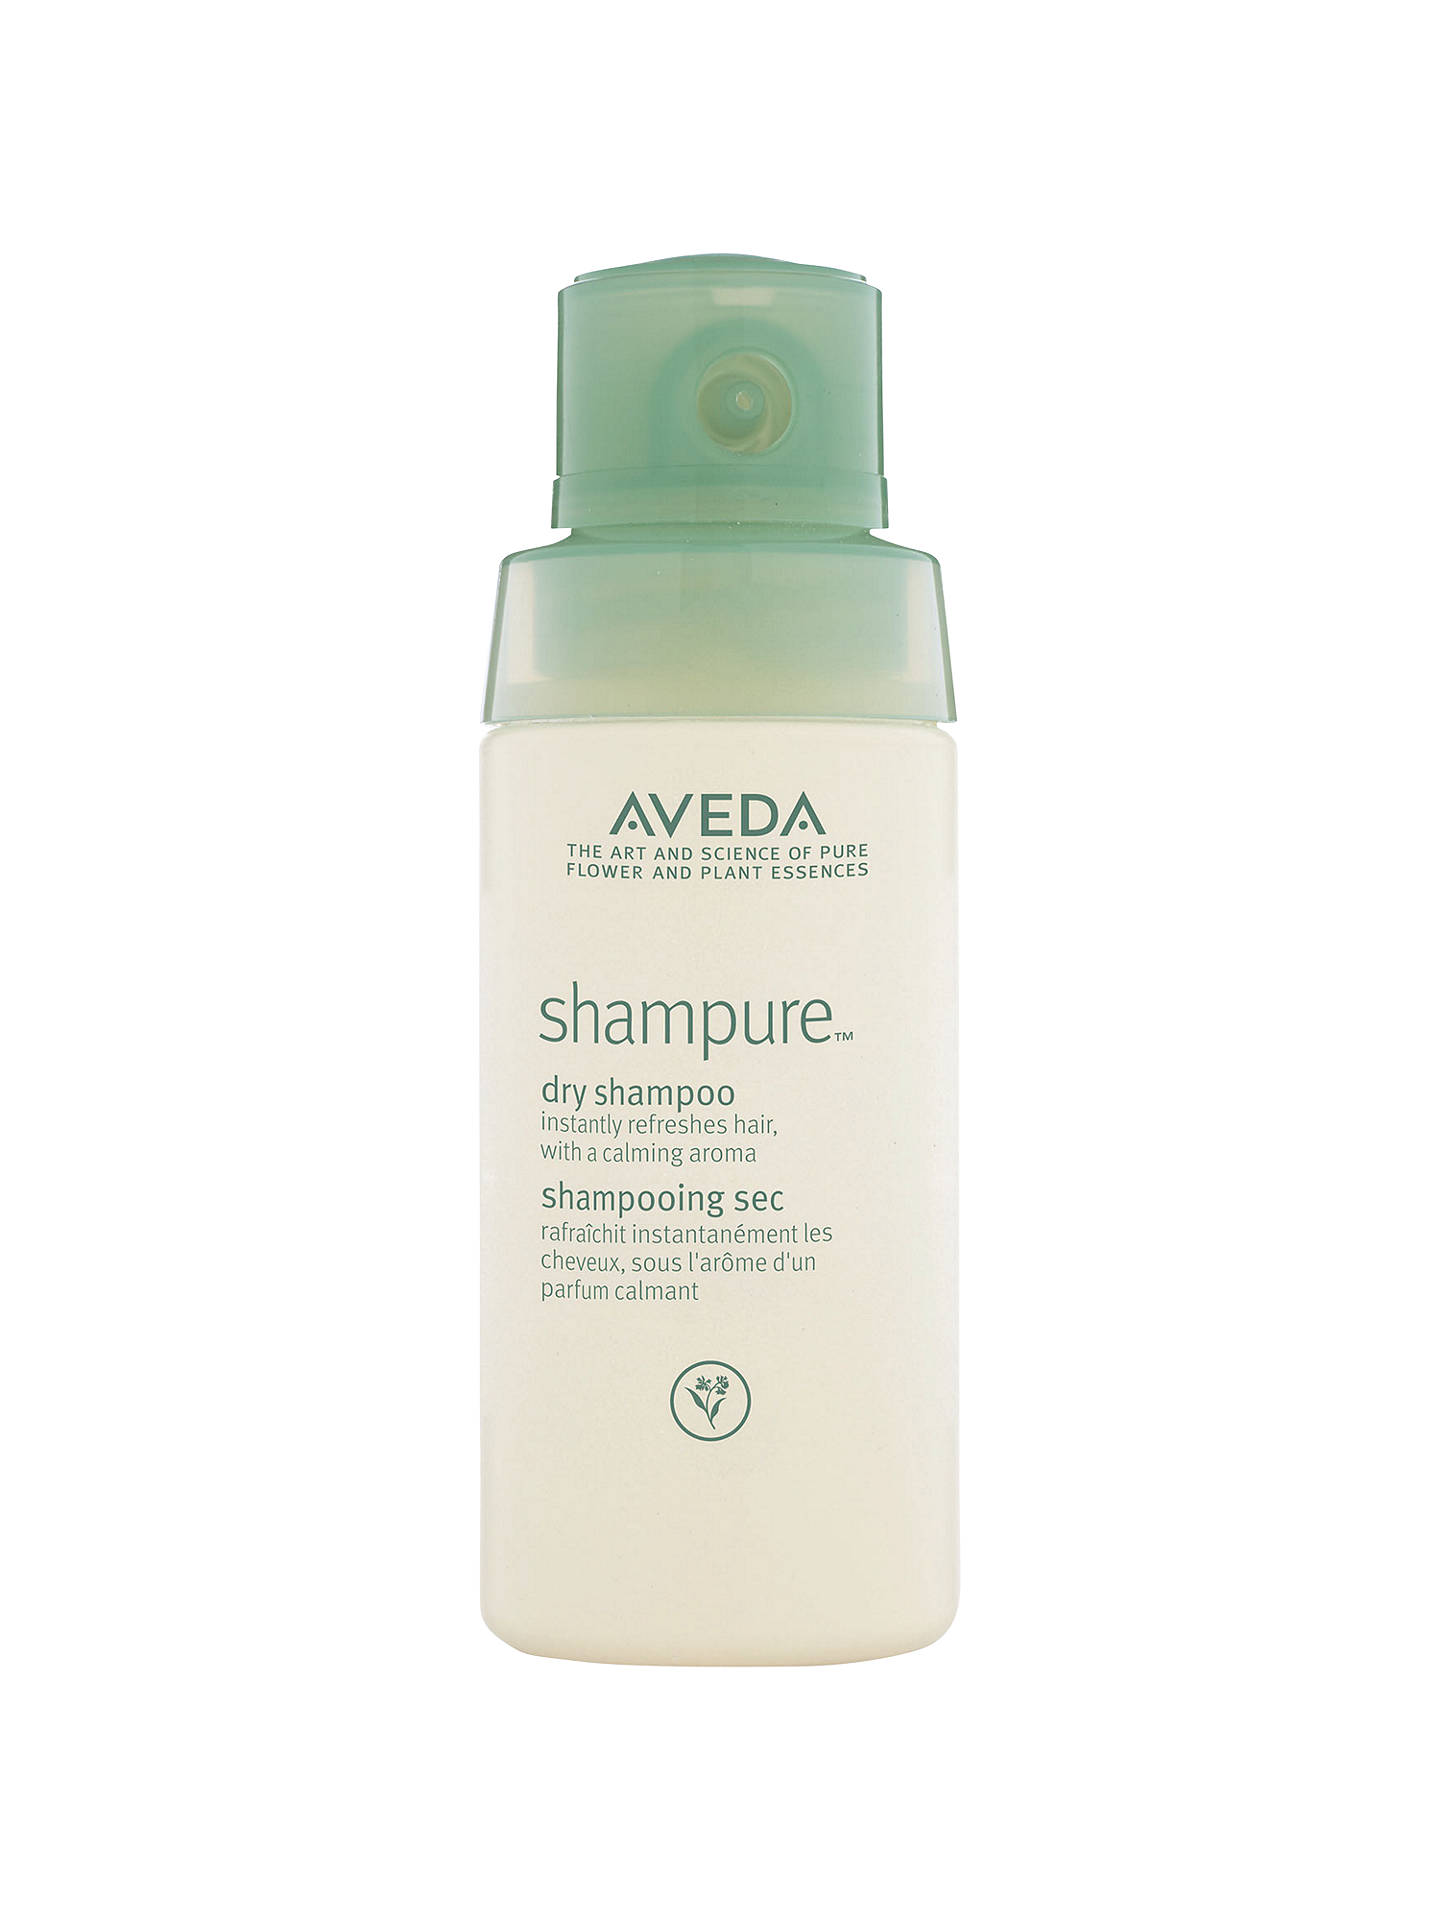 BuyAVEDA Shampure Dry Shampoo, 60ml Online at johnlewis.com